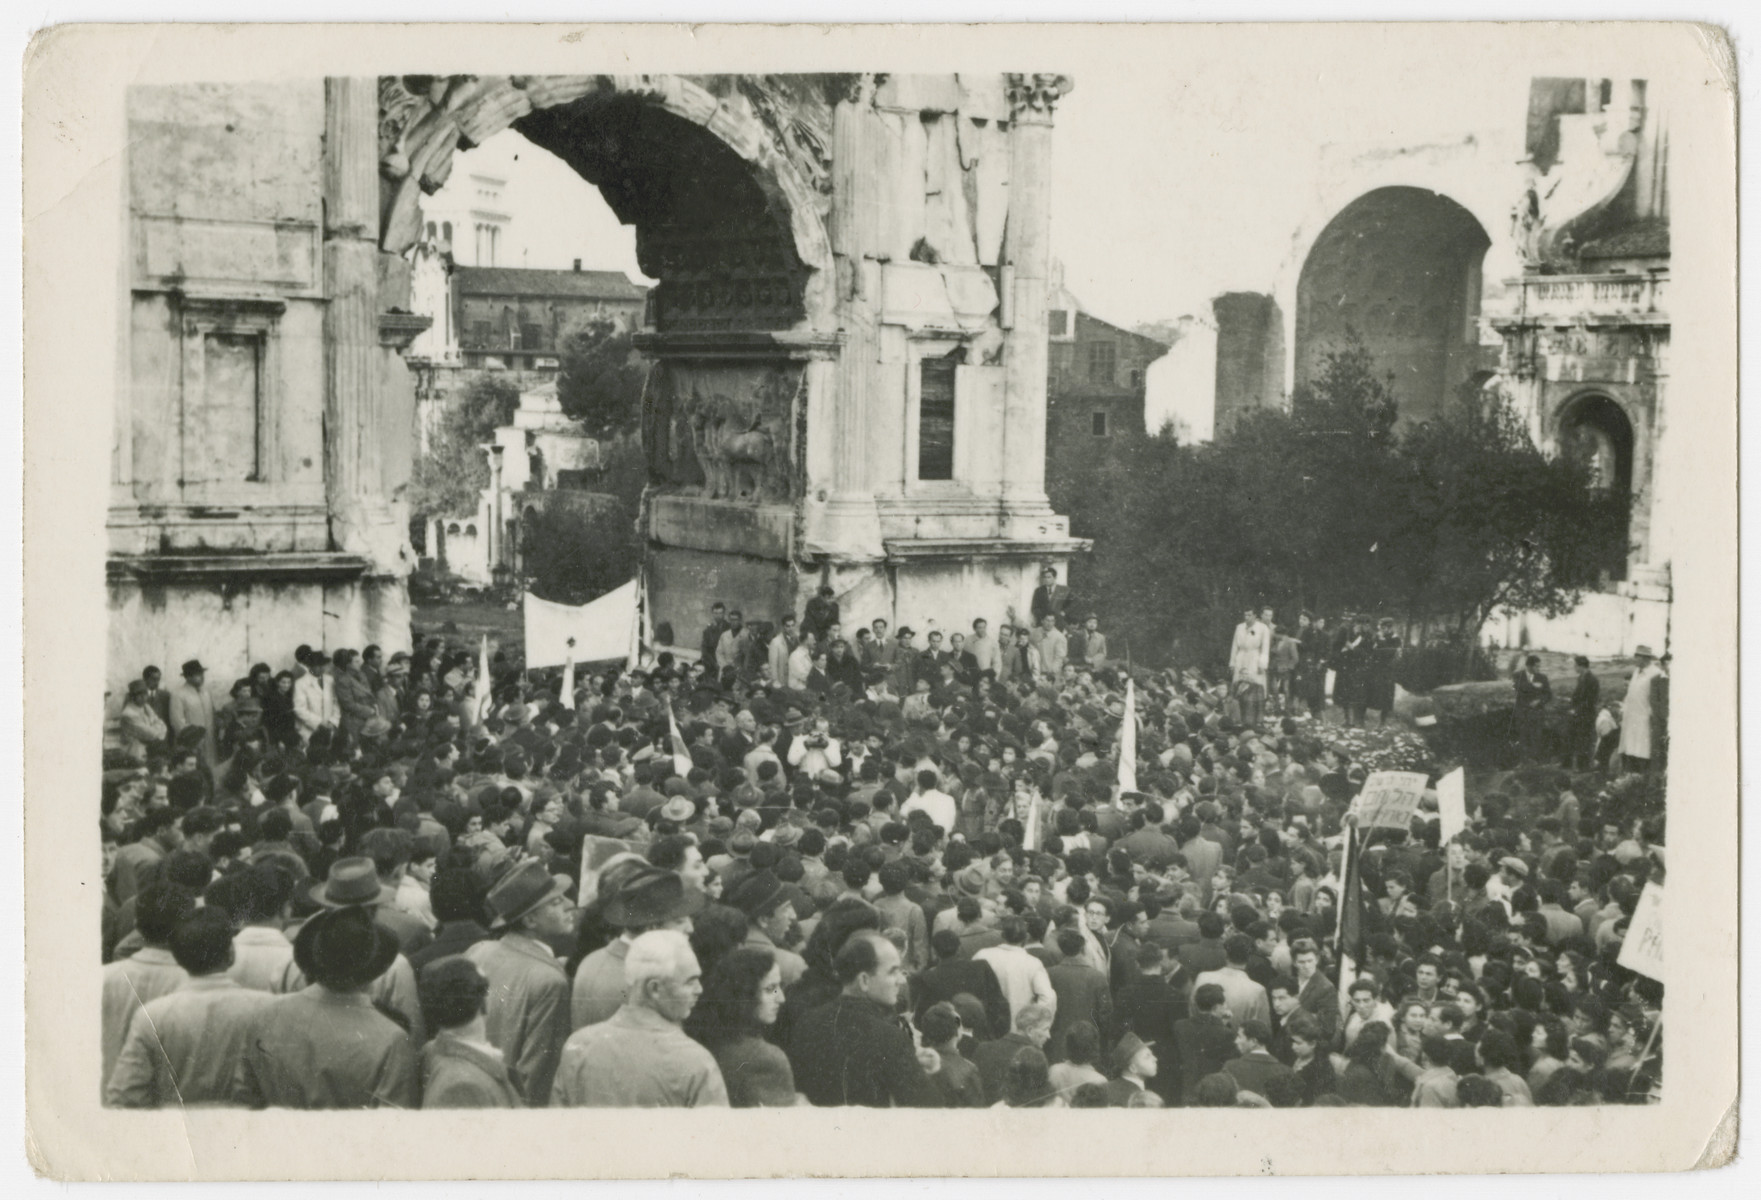 Jewish displaced persons celebrate the UN Partition of Palestine by gathering by the Arch of Titus in Rome.